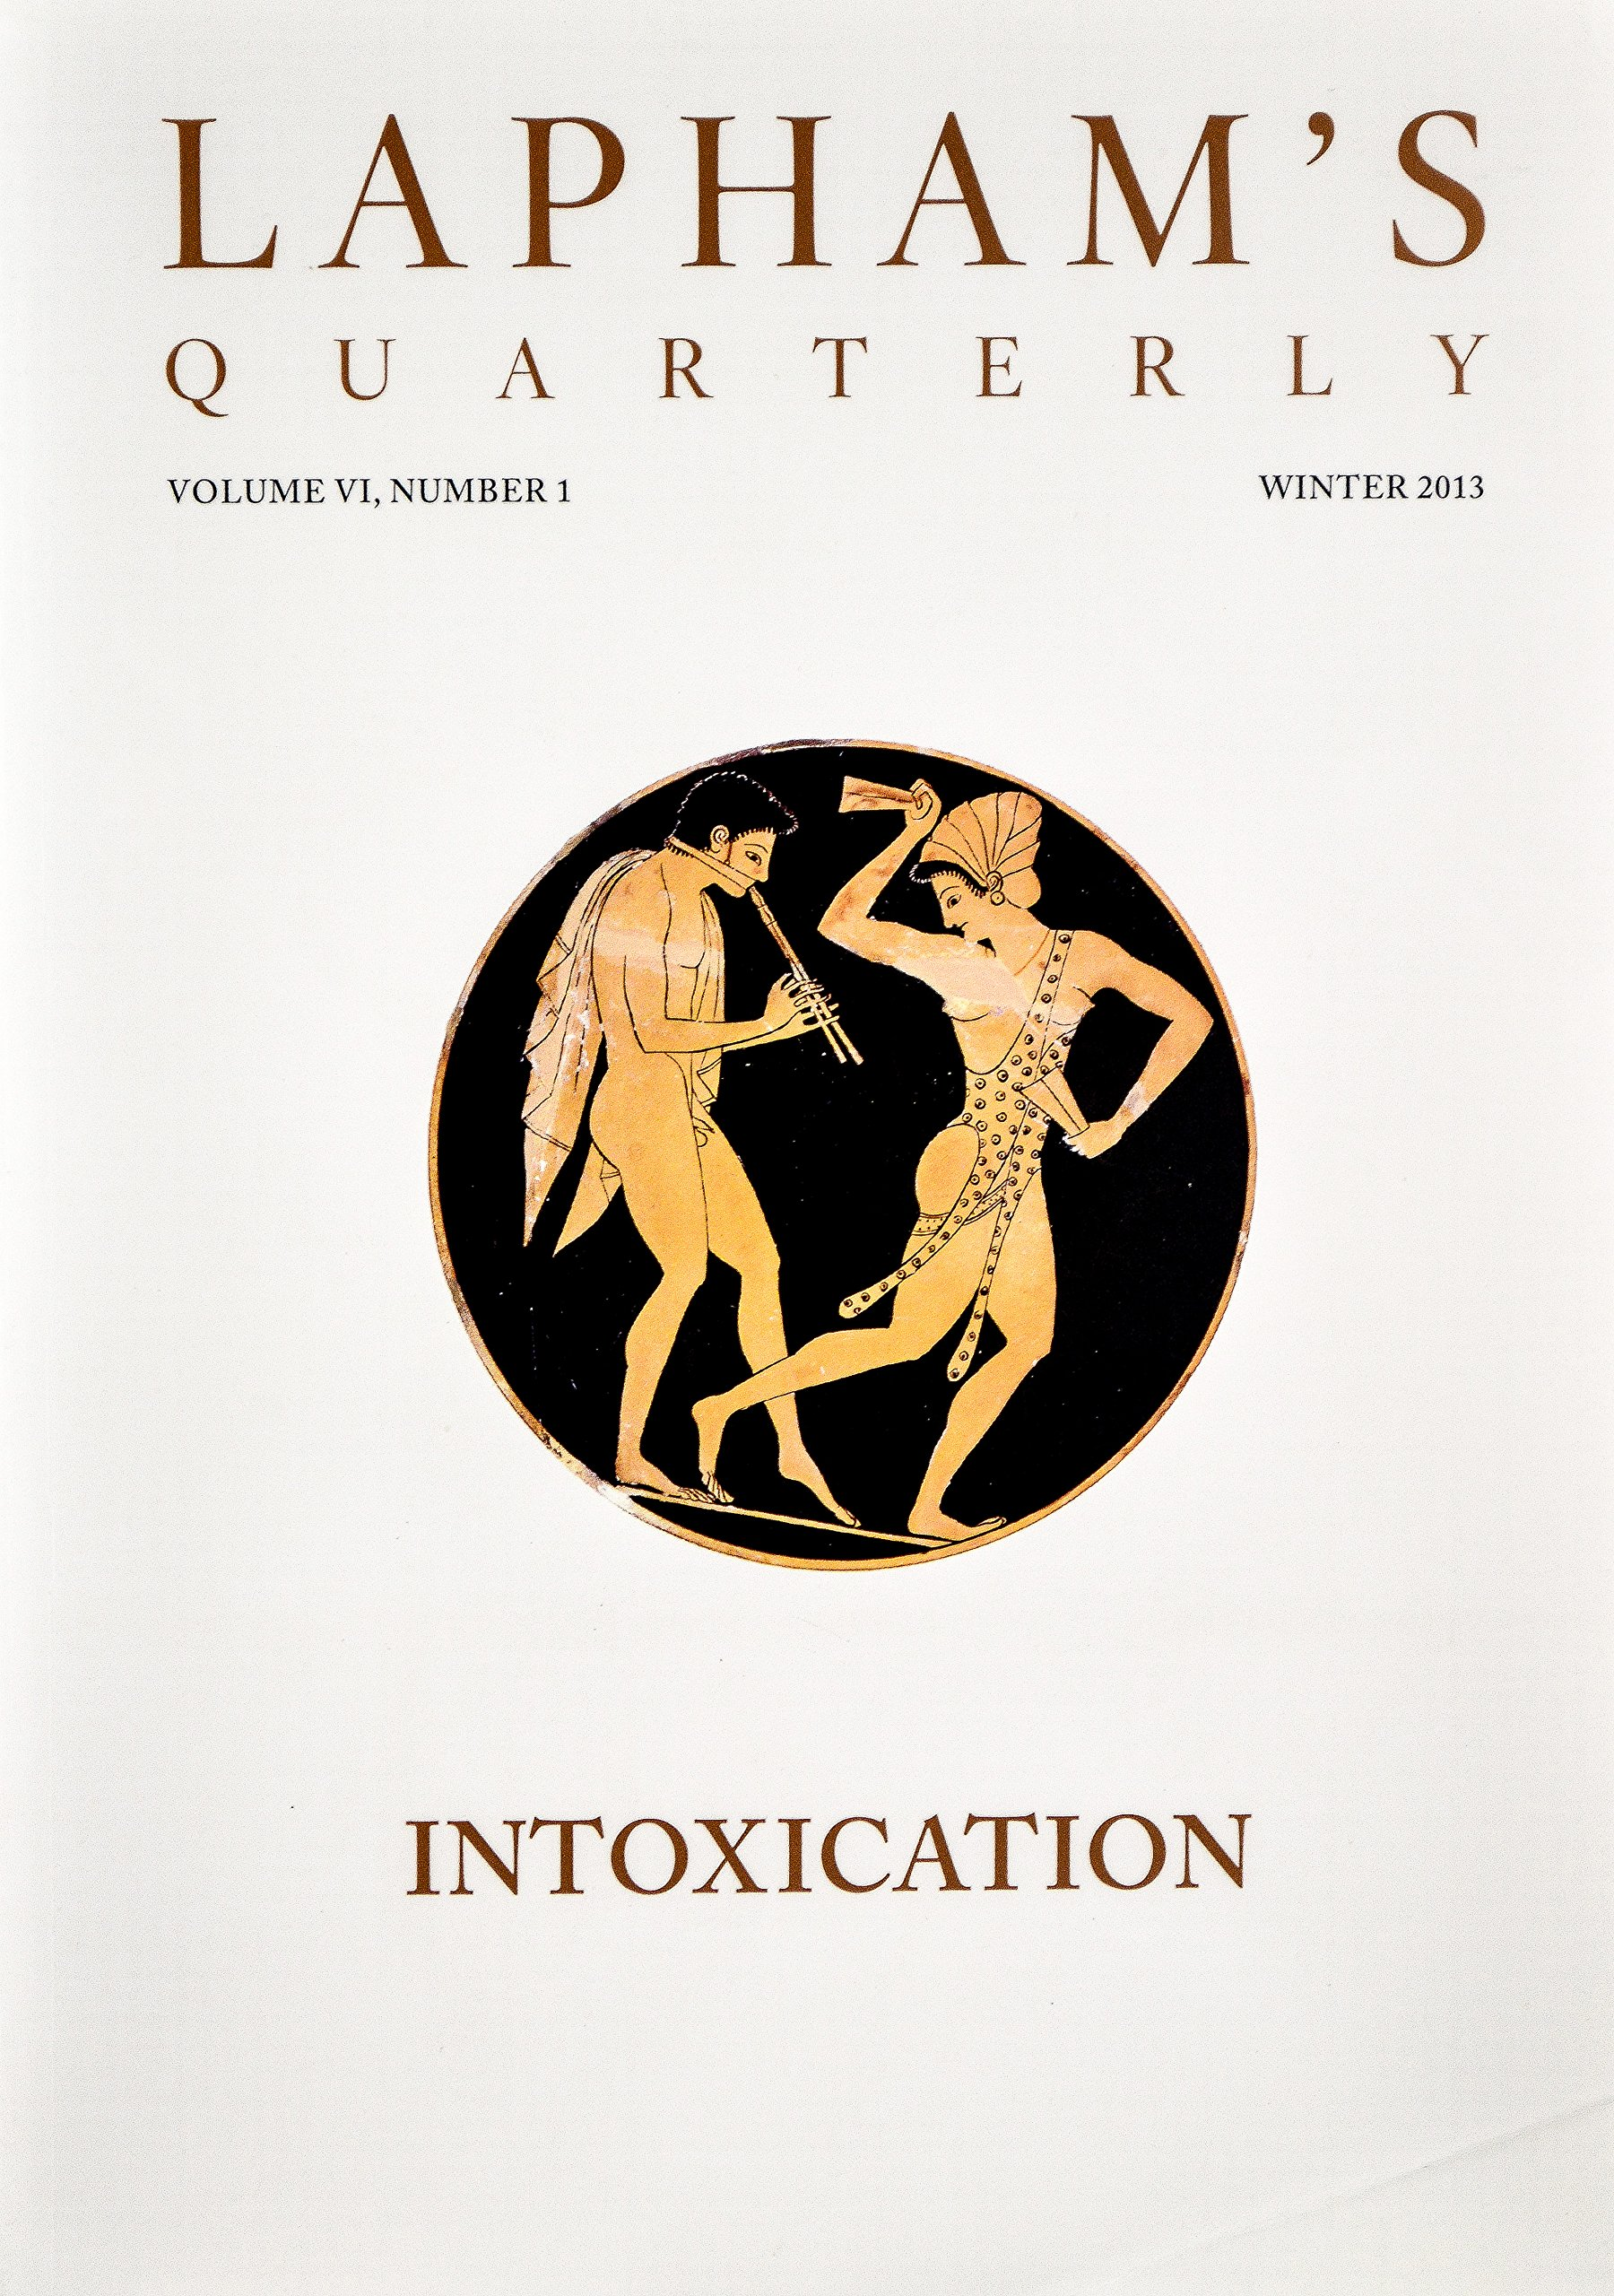 LAPHAM'S Quarterly. INTOXICATION. Vol V1, #1. Winter 2013.